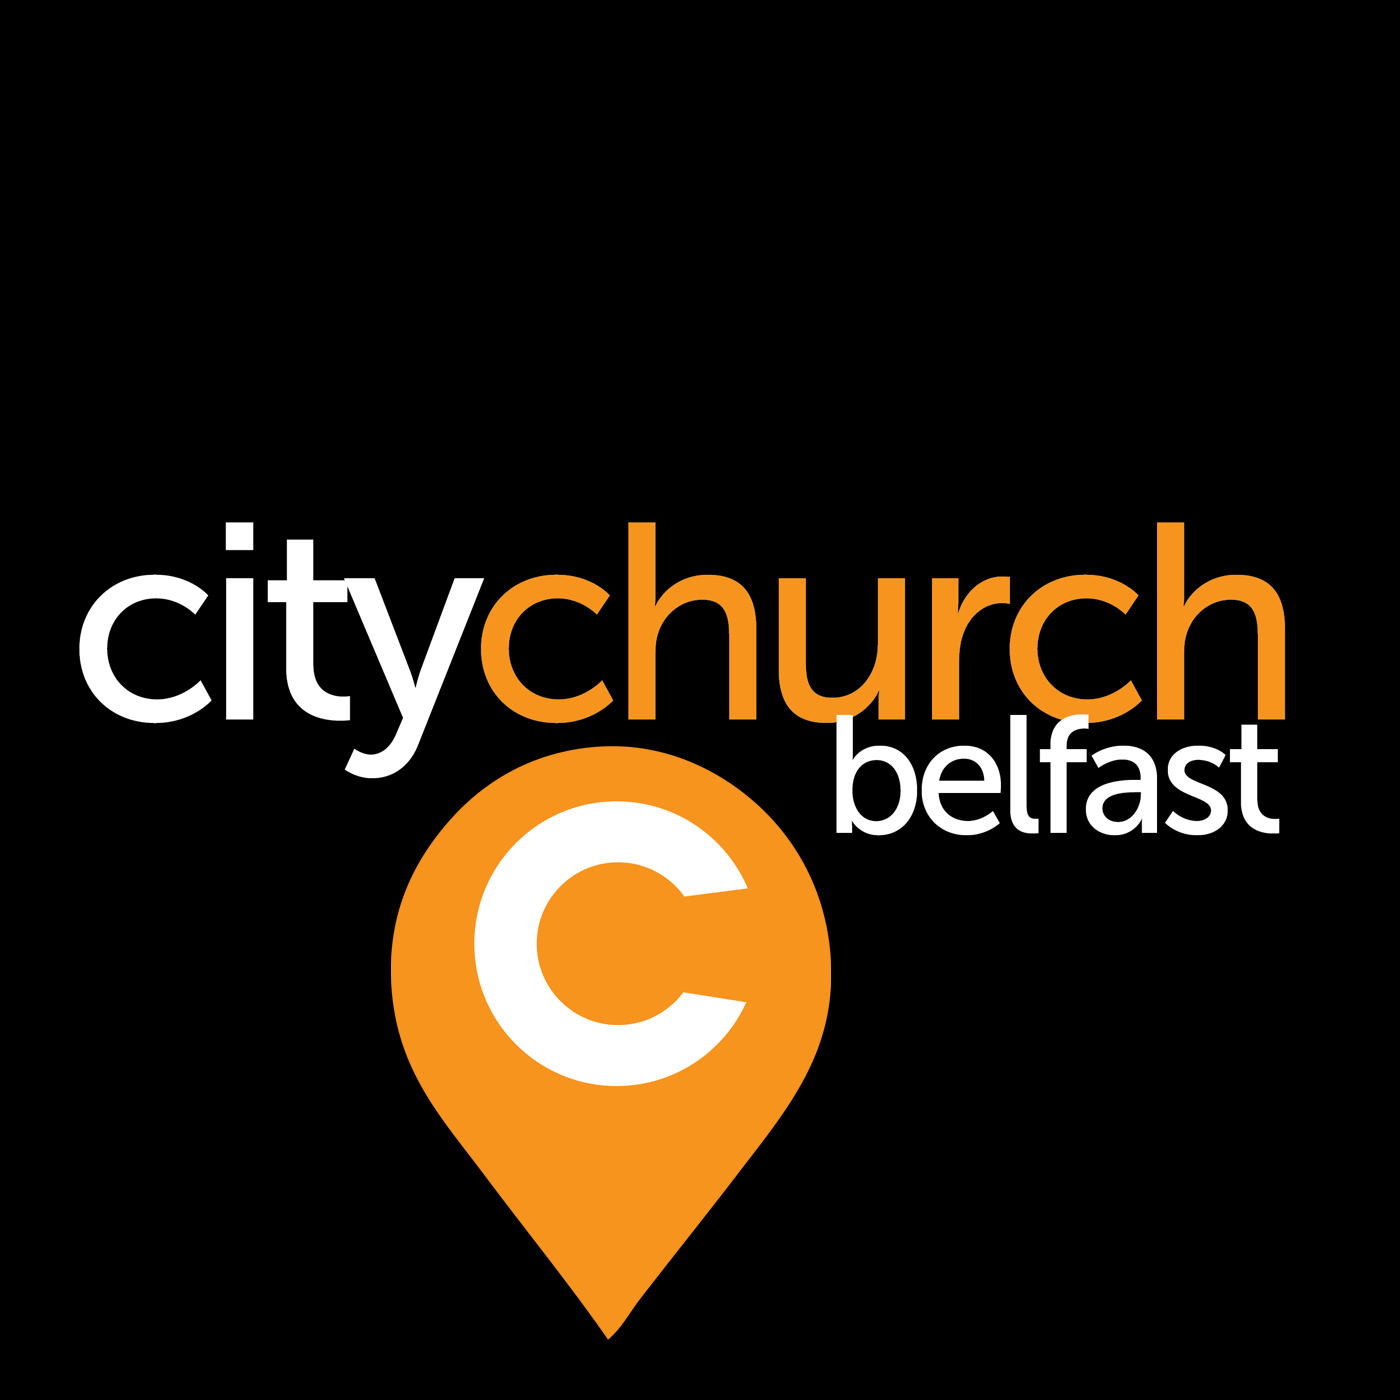 City Church Belfast